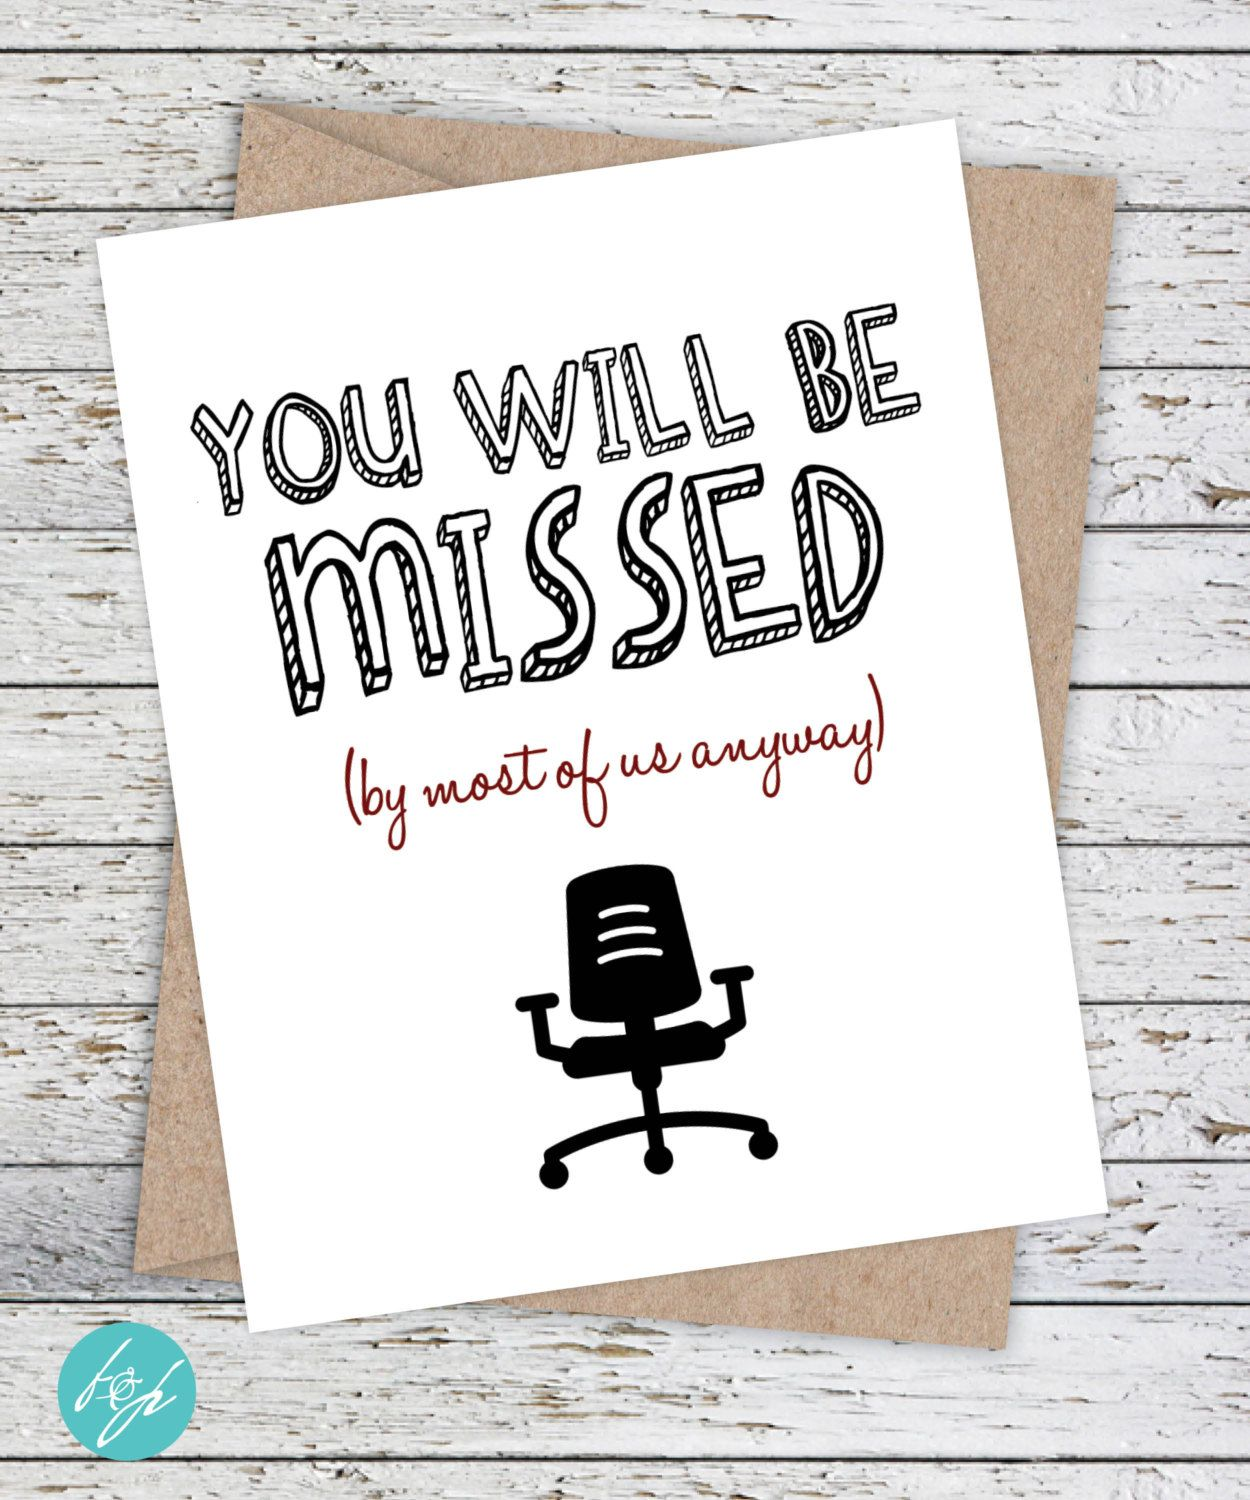 Funny coworker card by flairandpaper on etsy you will be missed by most of us anyway